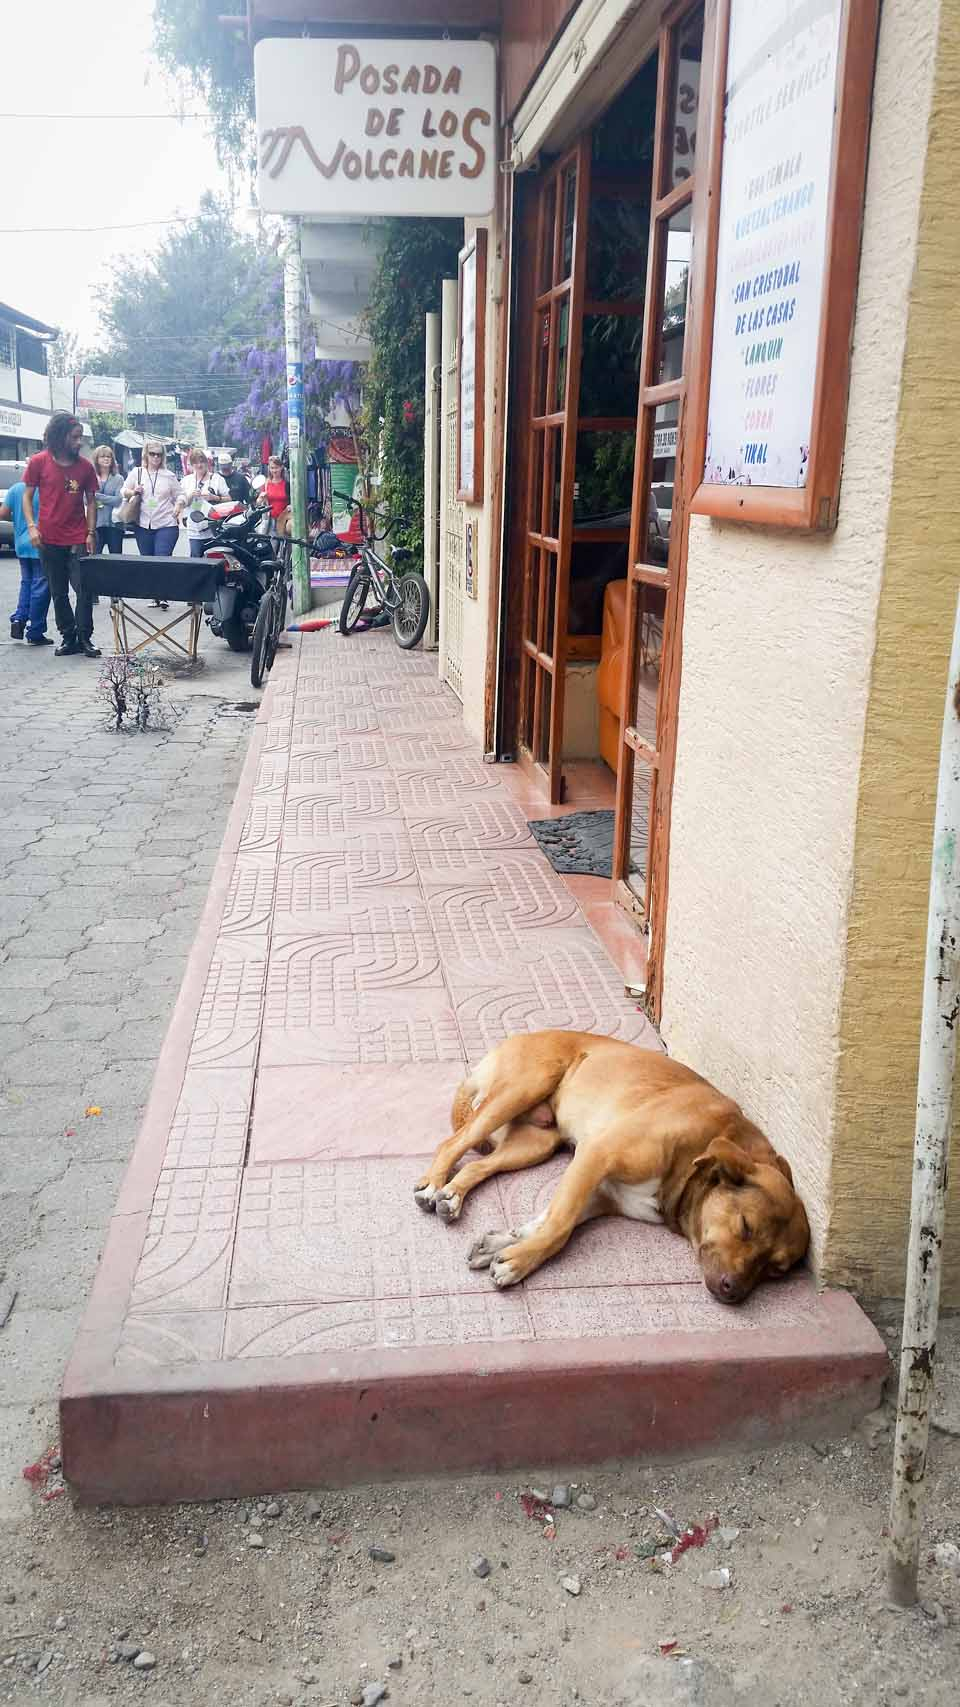 Dogs were everywhere! This one is napping outside our hotel.